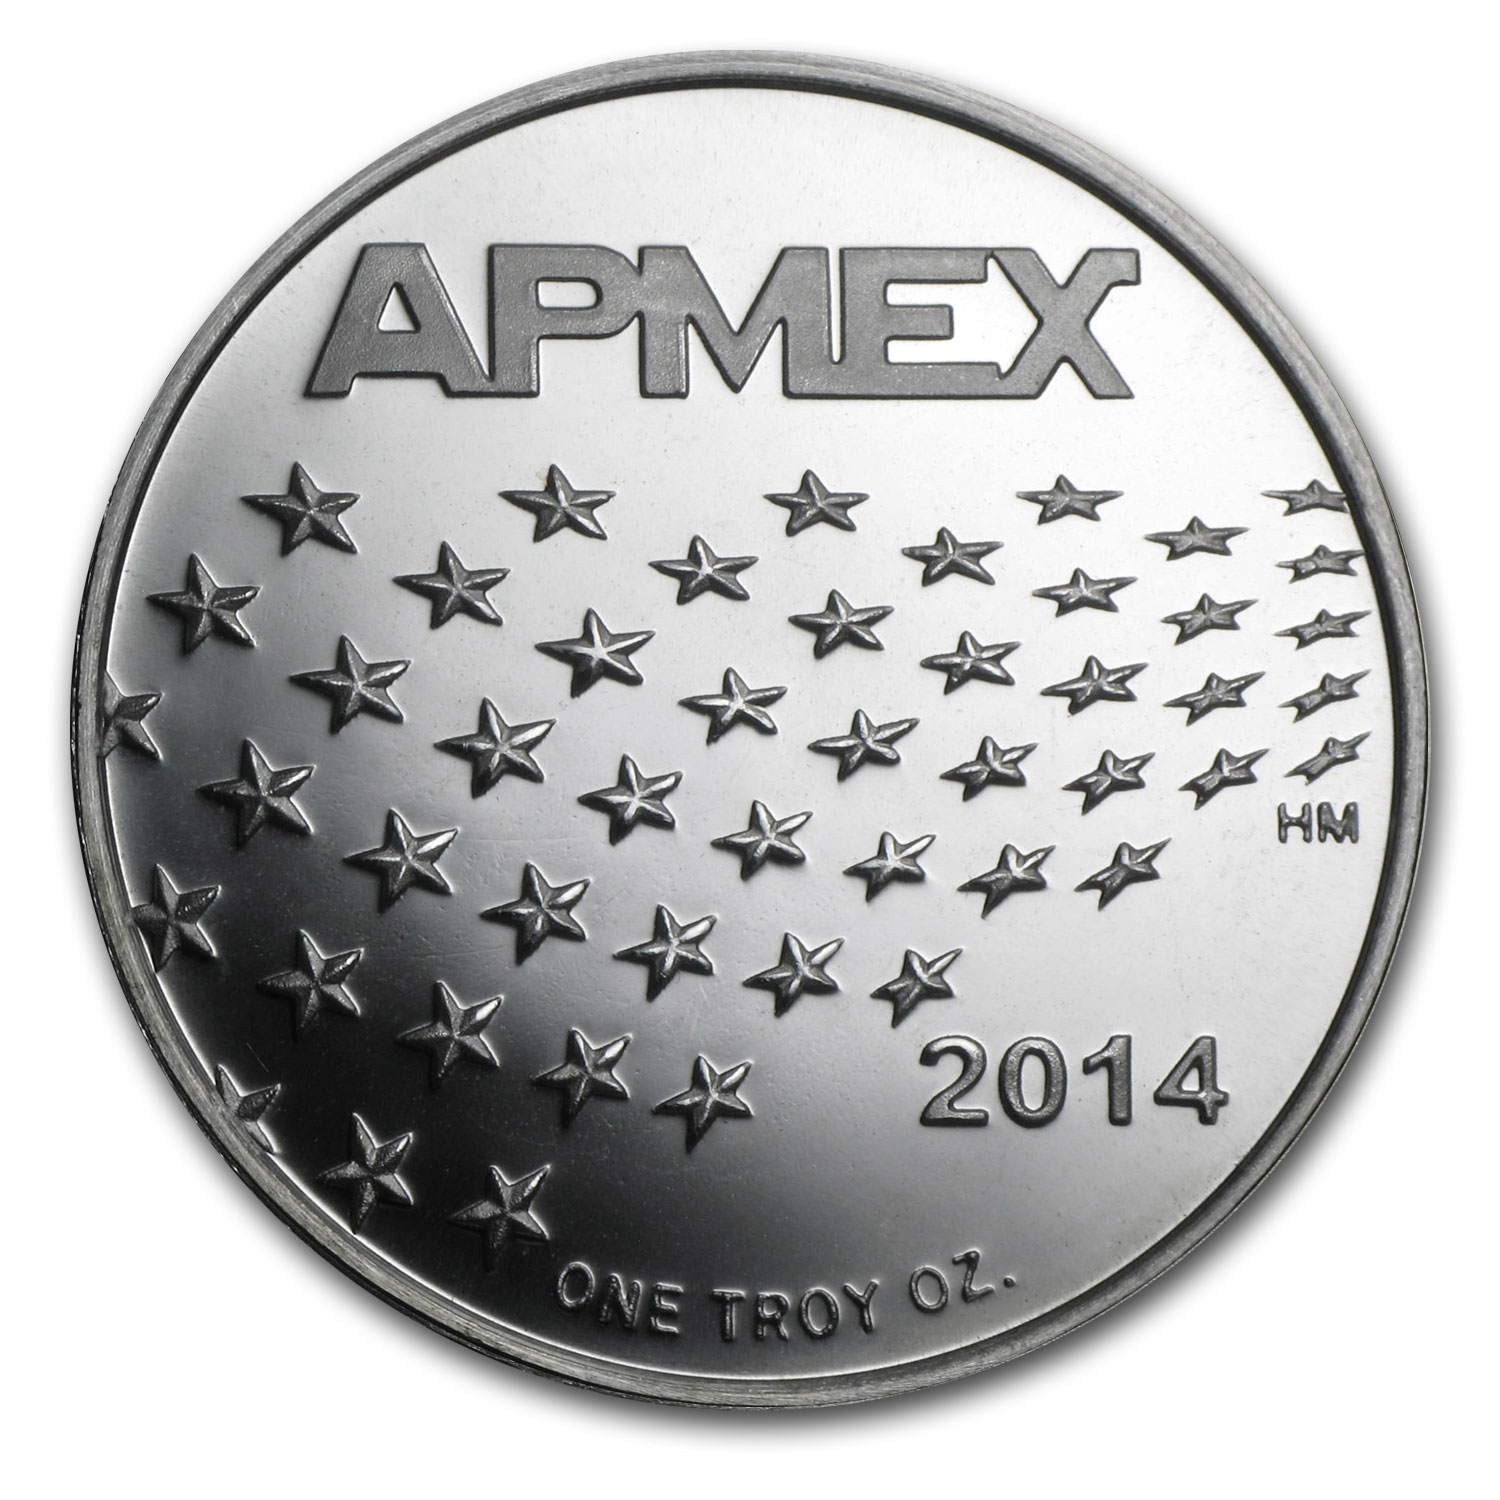 1 oz Silver Rounds - APMEX (2014 Stars and Stripes)